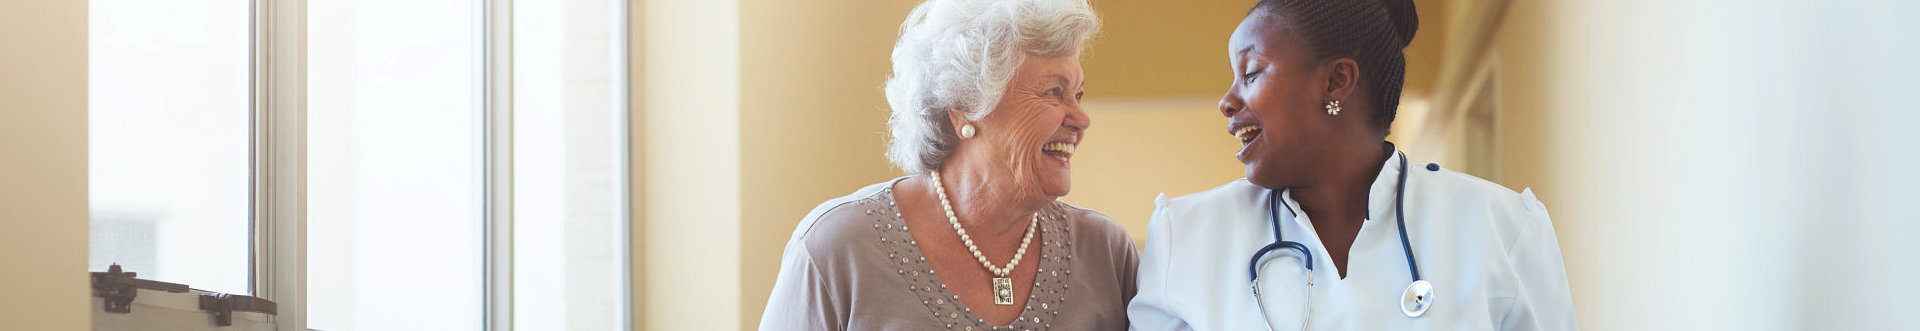 nurse and elder woman smiling to each other